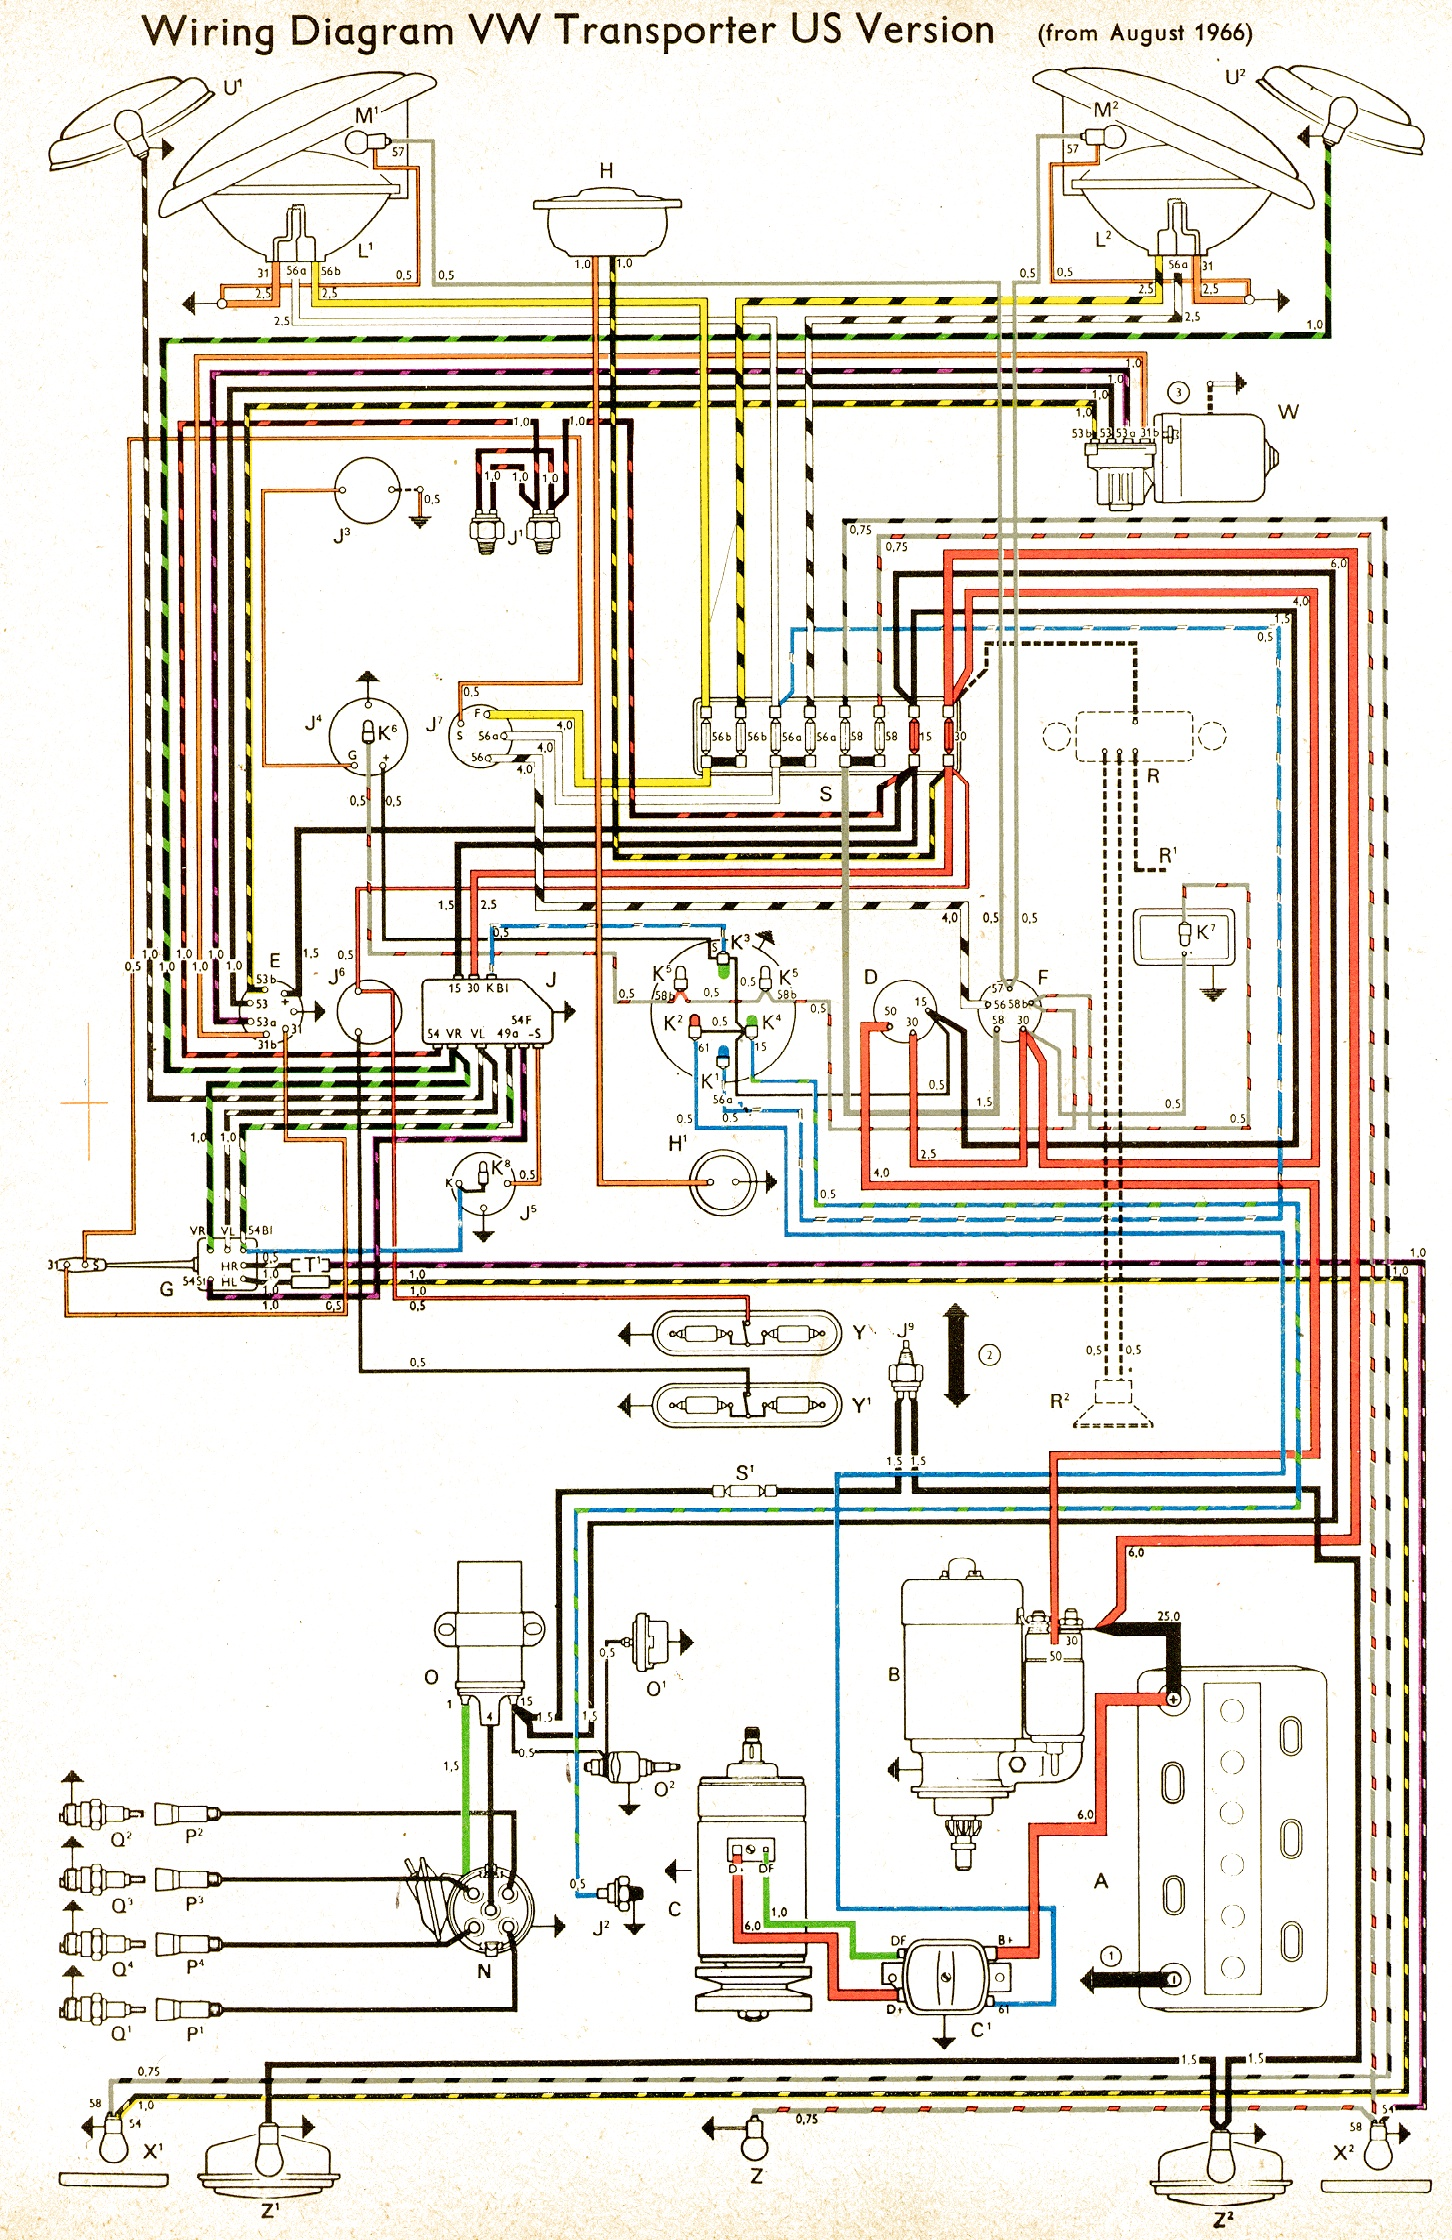 1993 vw wiring diagram another wiring diagrams u2022 rh benpaterson co uk  1993 vw eurovan fuse box diagram 1993 Volkswagen Eurovan GL